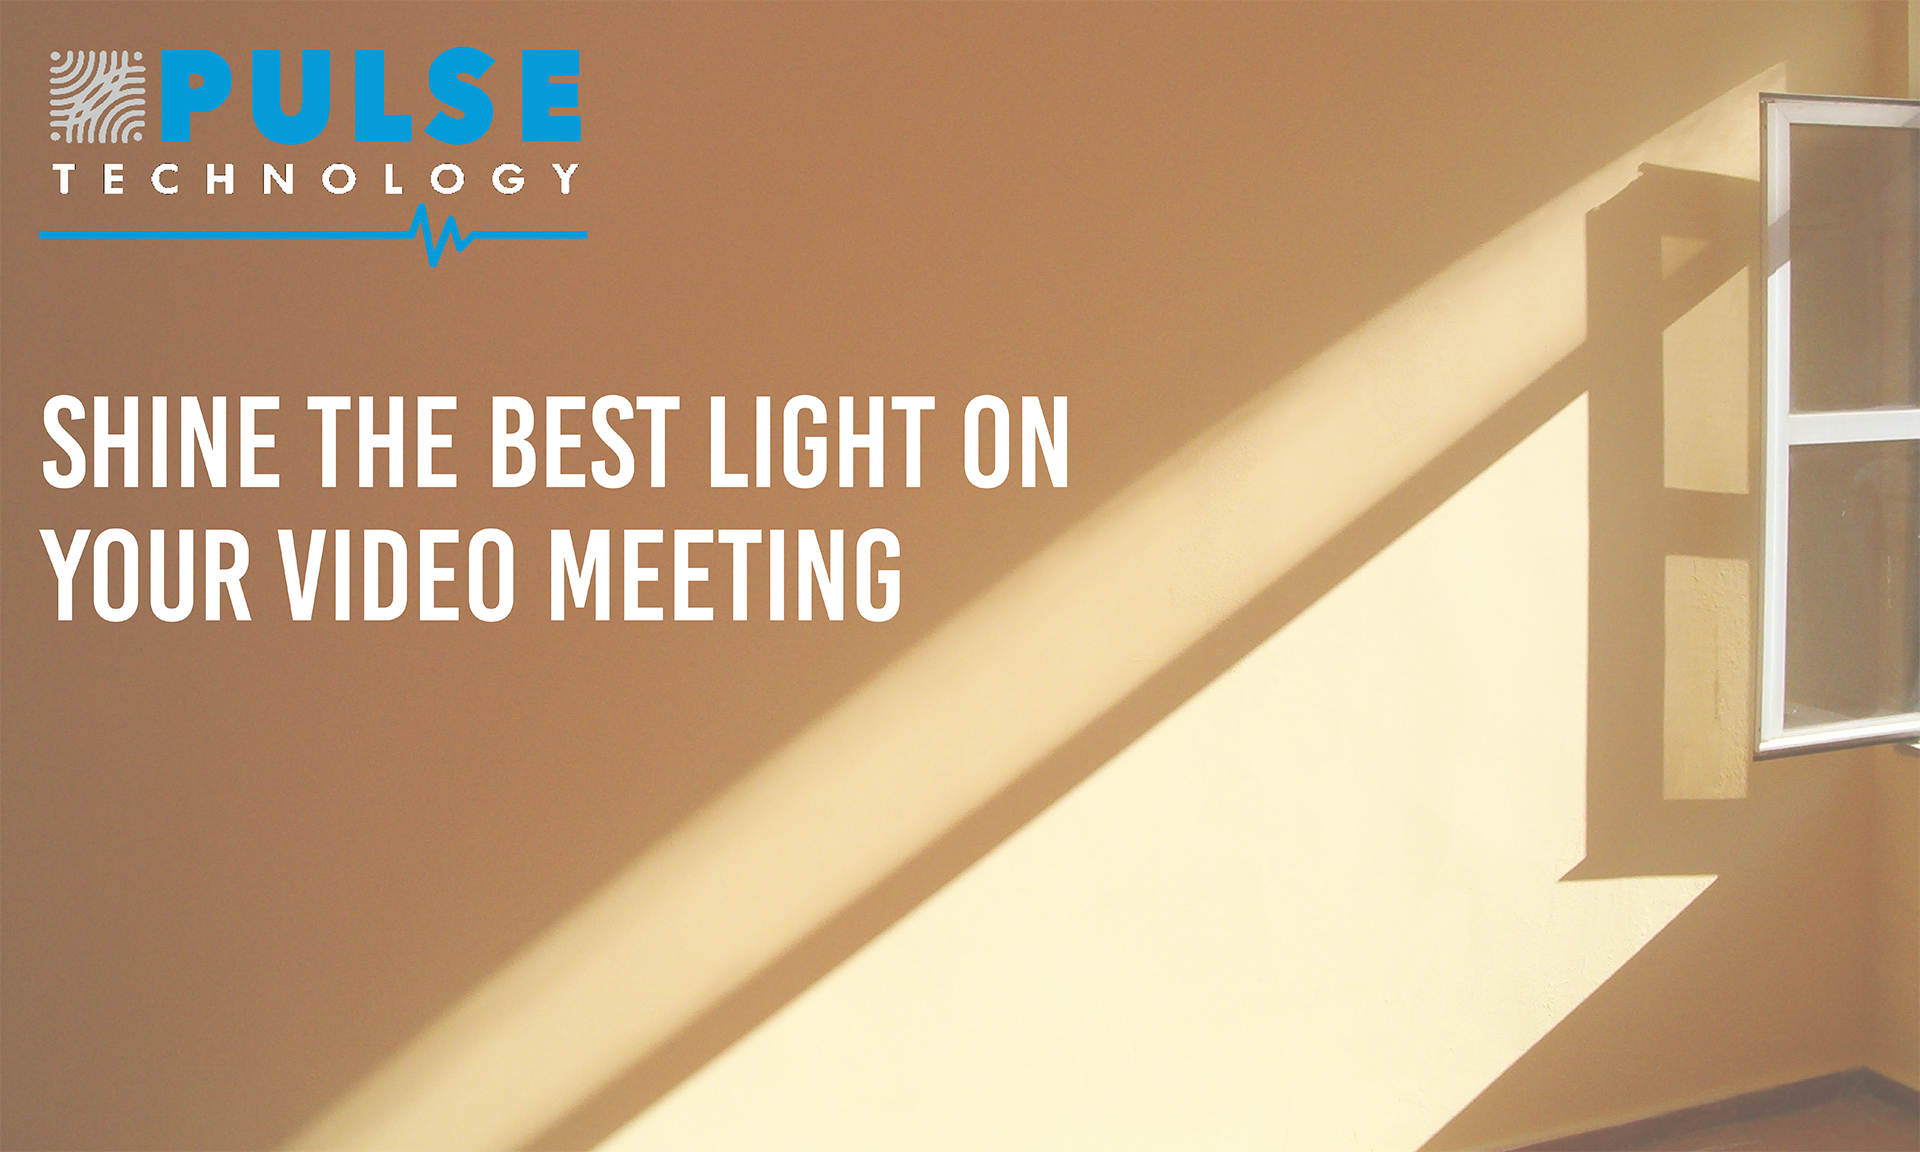 Shine the Best Light on Your Video Meeting